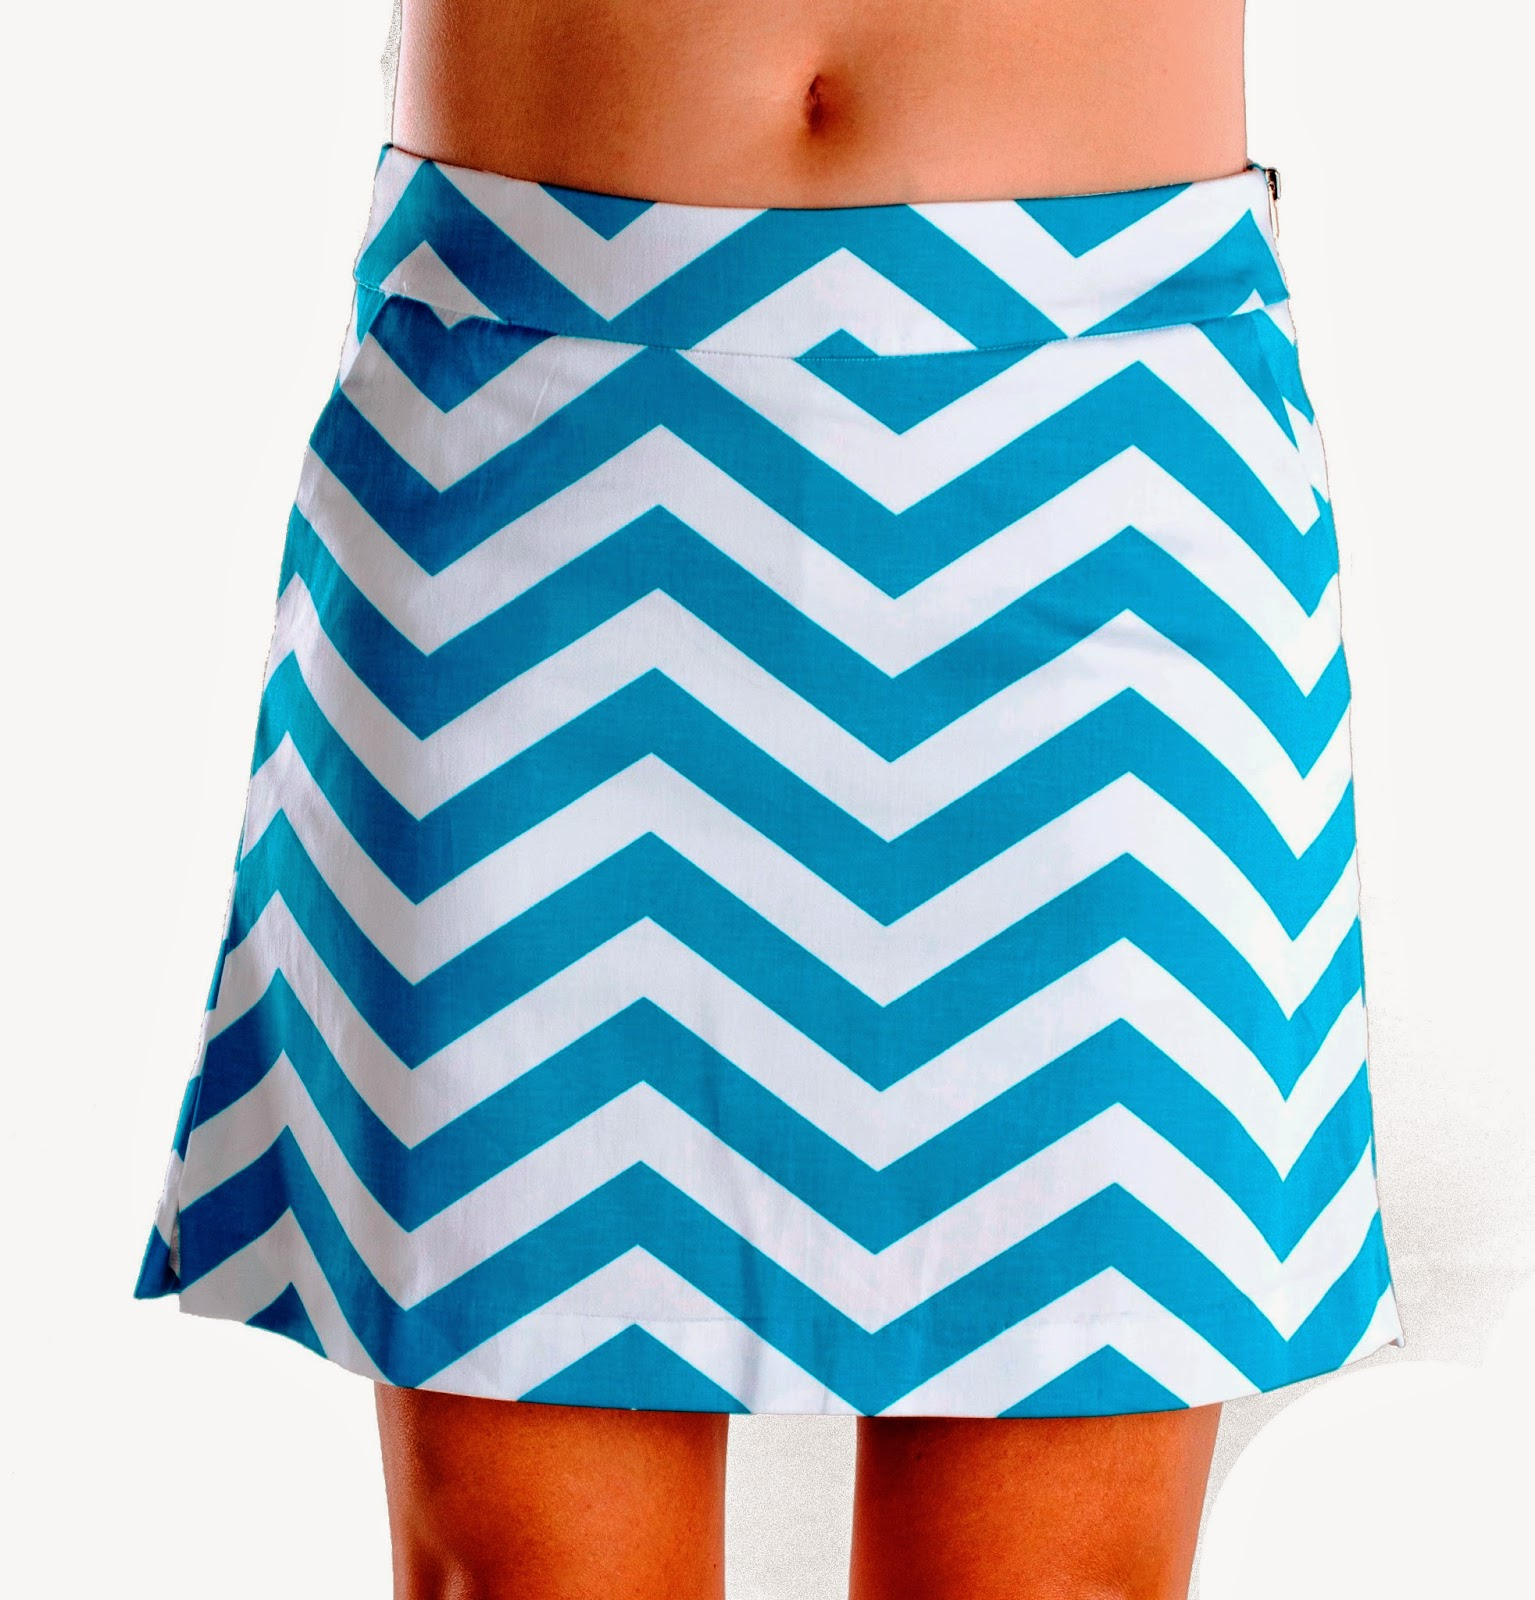 http://www.pinkgolftees.com/haute-shot-golf-on-the-dance-floor-skort.html